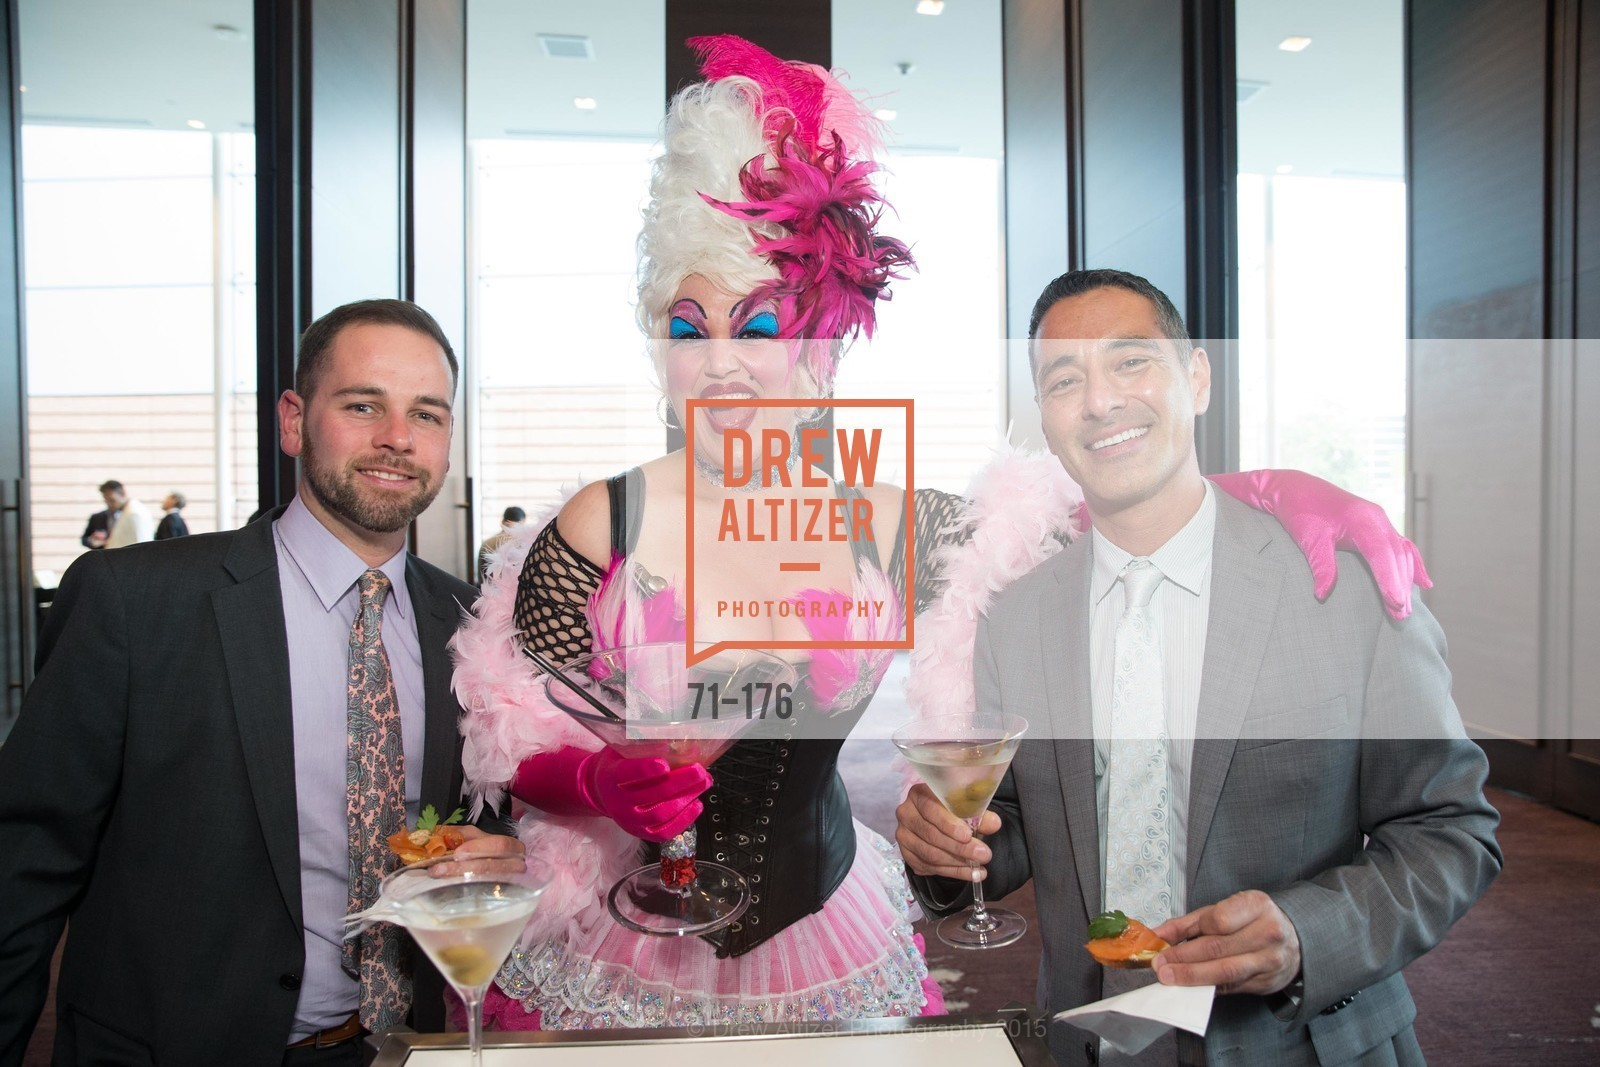 Mickey Smith, Anita Cocktail, Jonathan Patrizio, VIP Pride Celebration 2015, St. Regis, June 18th, 2015,Drew Altizer, Drew Altizer Photography, full-service agency, private events, San Francisco photographer, photographer california